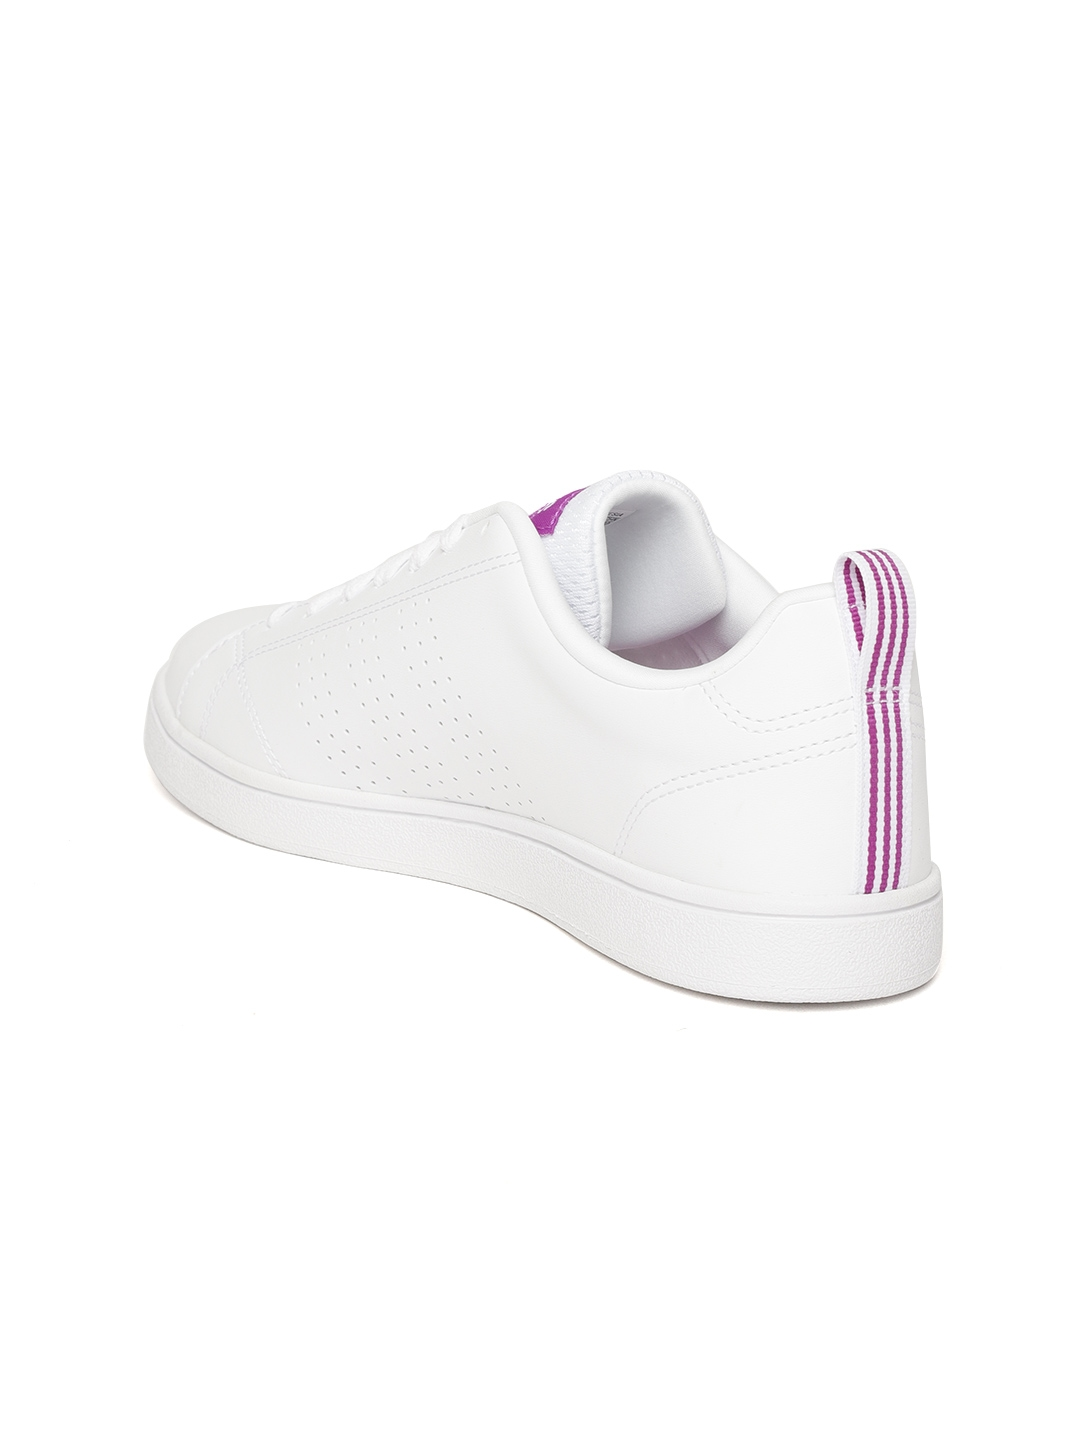 hot sale online 4f030 0d481 ADIDAS Women White VS ADVANTAGE CL Tennis Shoes